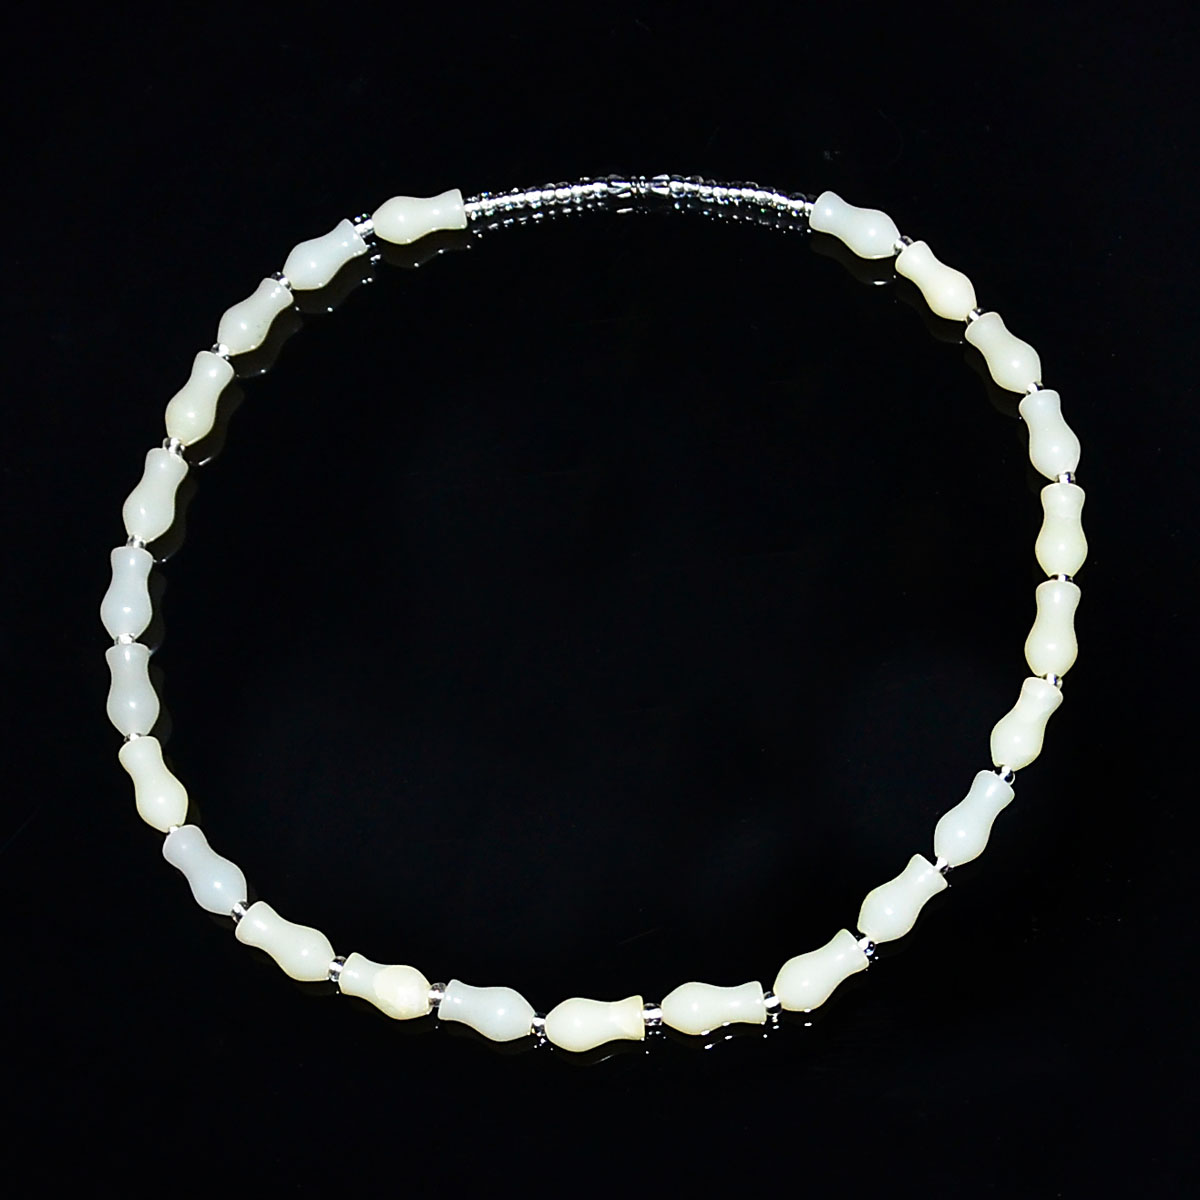 Lot 2 - 和田白玉雕葫蘆珠項鍊 Hetian White Jade Gourd-Section Beads Necklace. Diameter: 6¾ in (17.1 cm)  Weight: 46